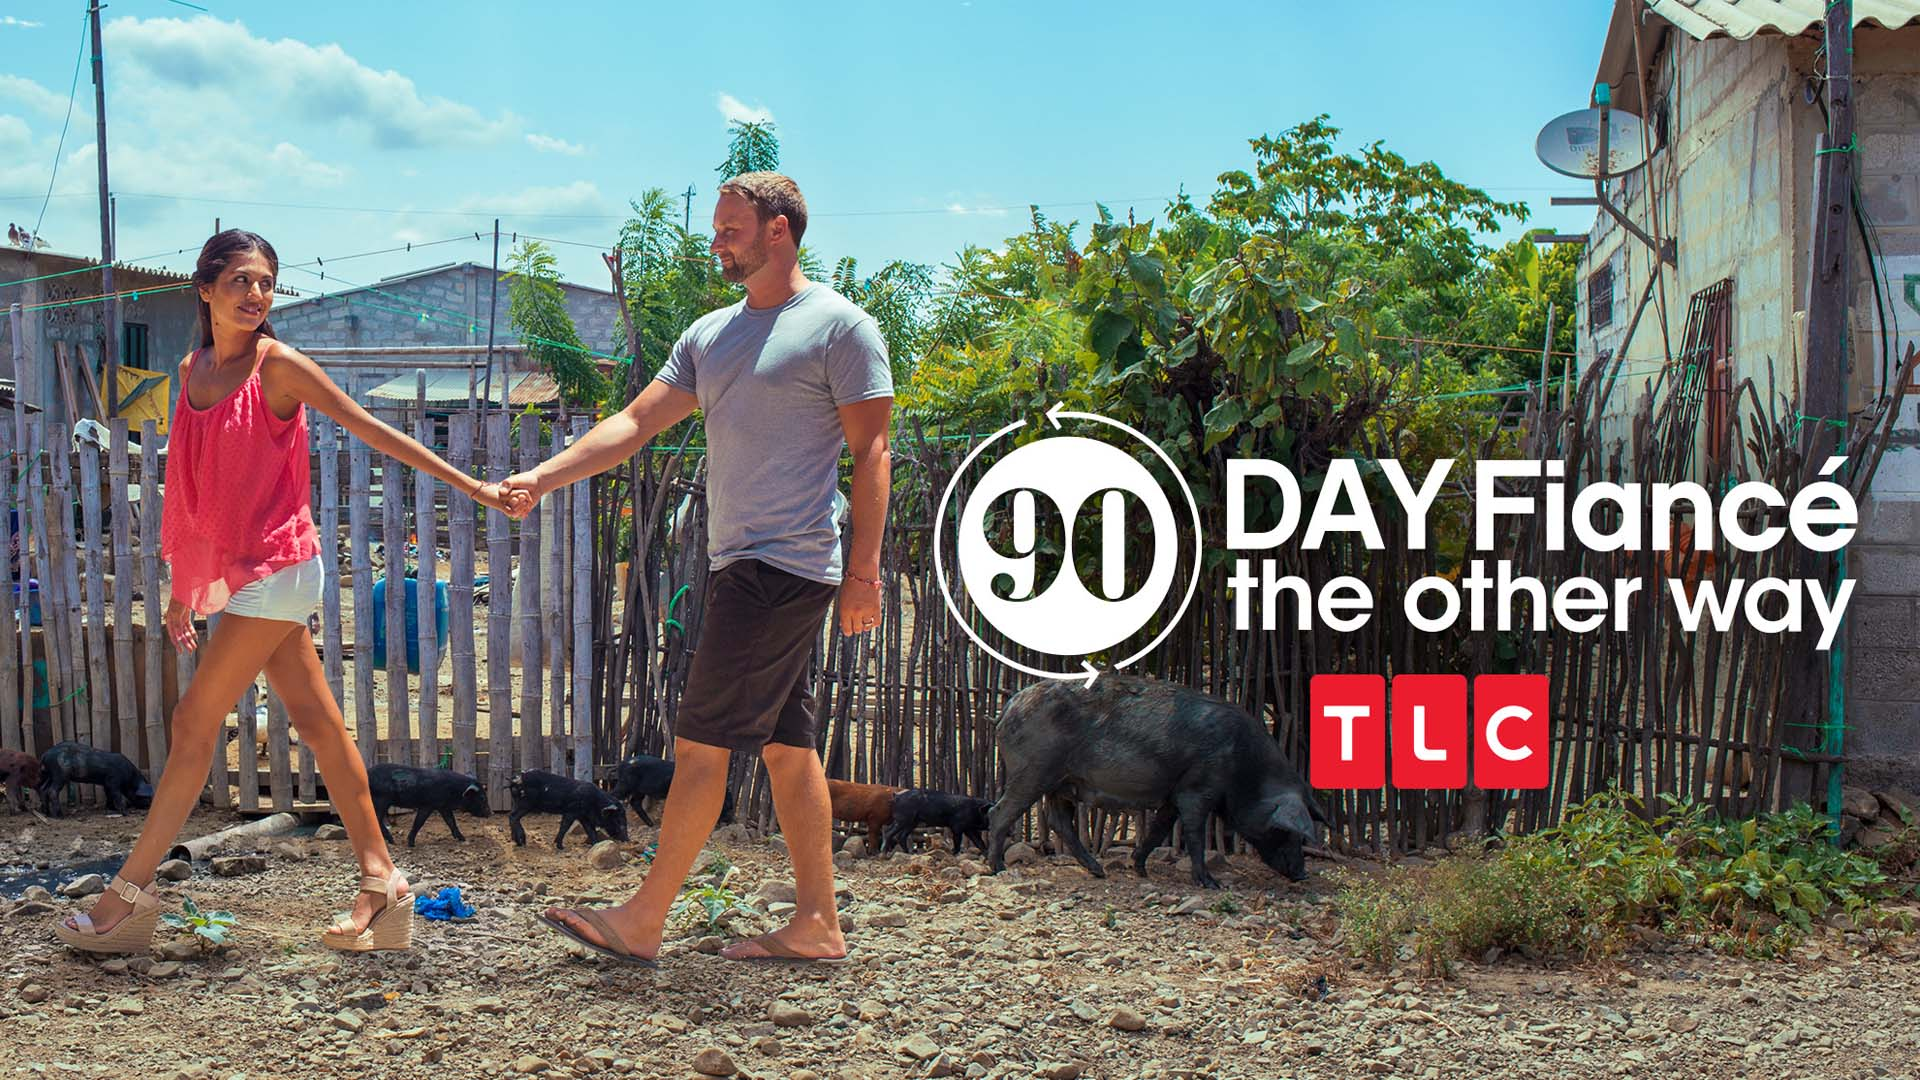 90 Day Fiance: The Other Way Season 1